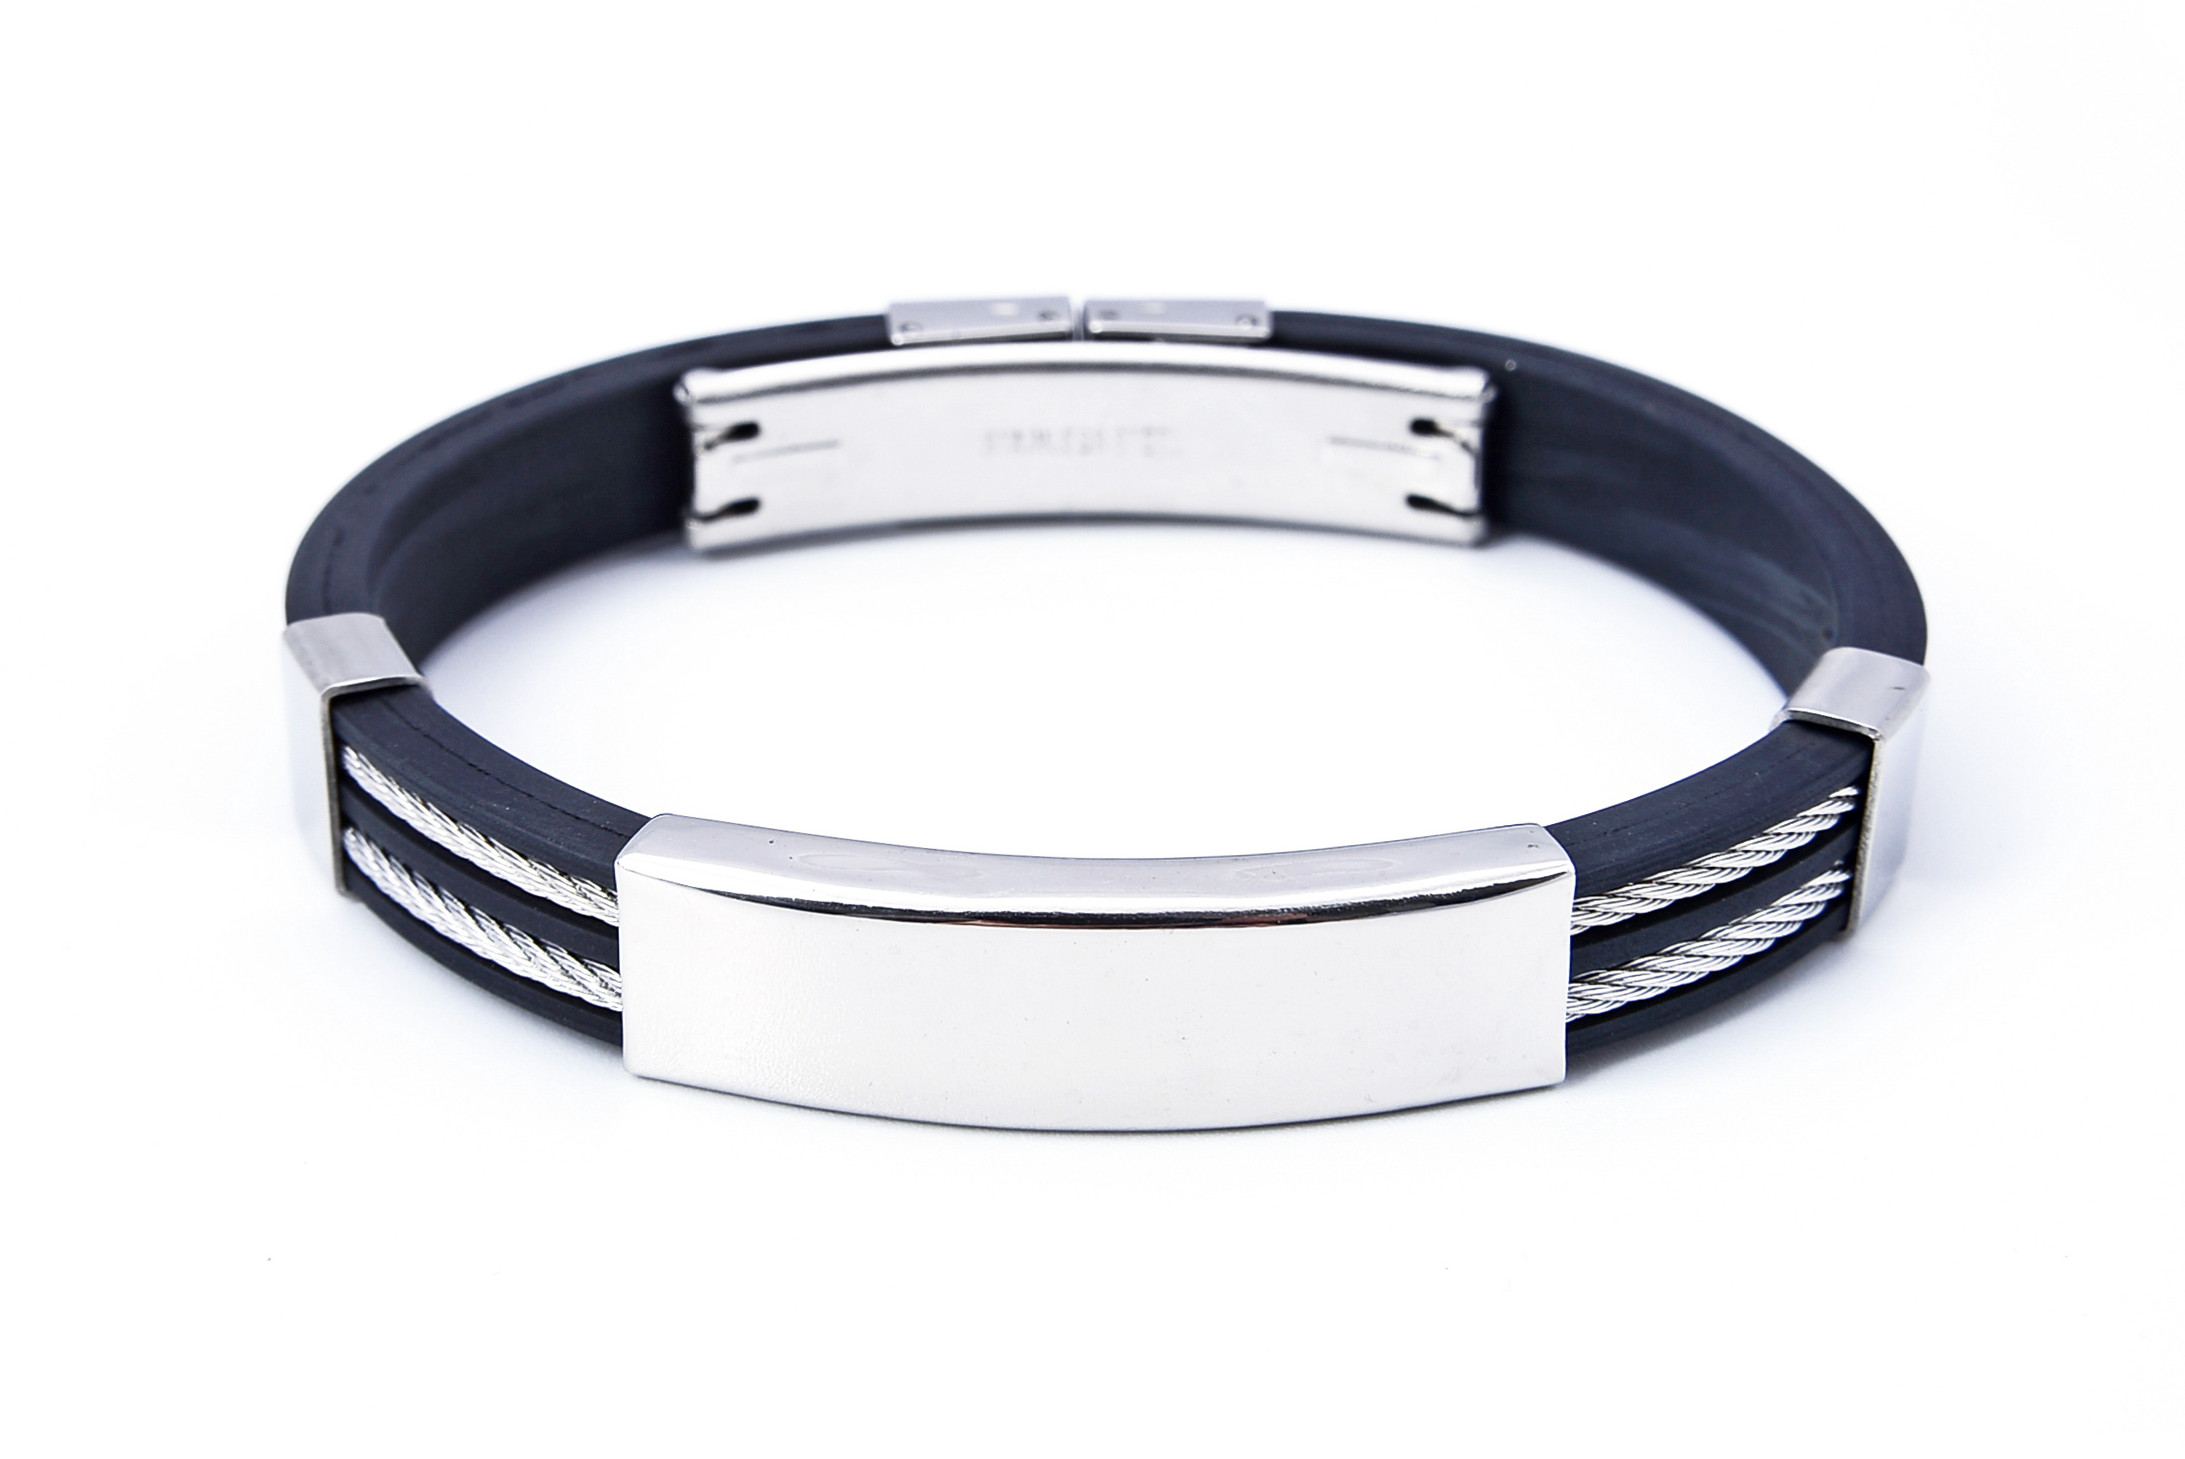 Stainless Steel Rubber Wrist Band Bracelet - f-br8